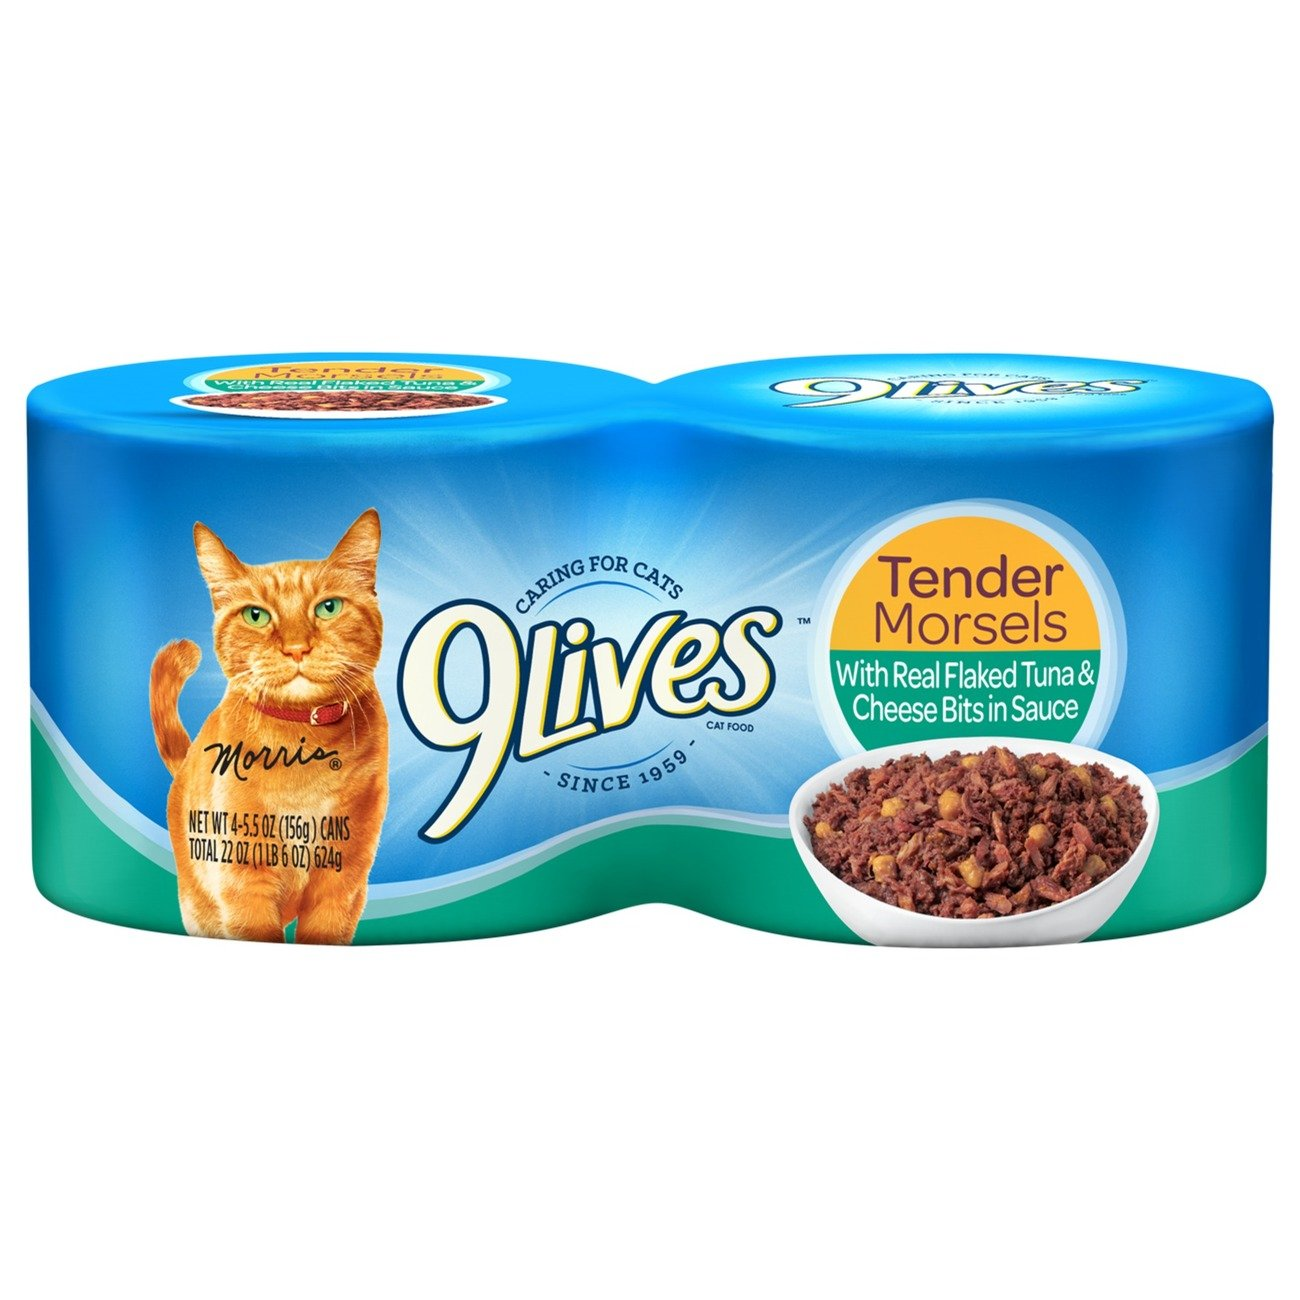 9Lives Tender Morsels With Real Flaked Tuna & Cheese Bits In Sauce Wet Cat Food, 4/5.5-Ounce Cans (Pack of 6)